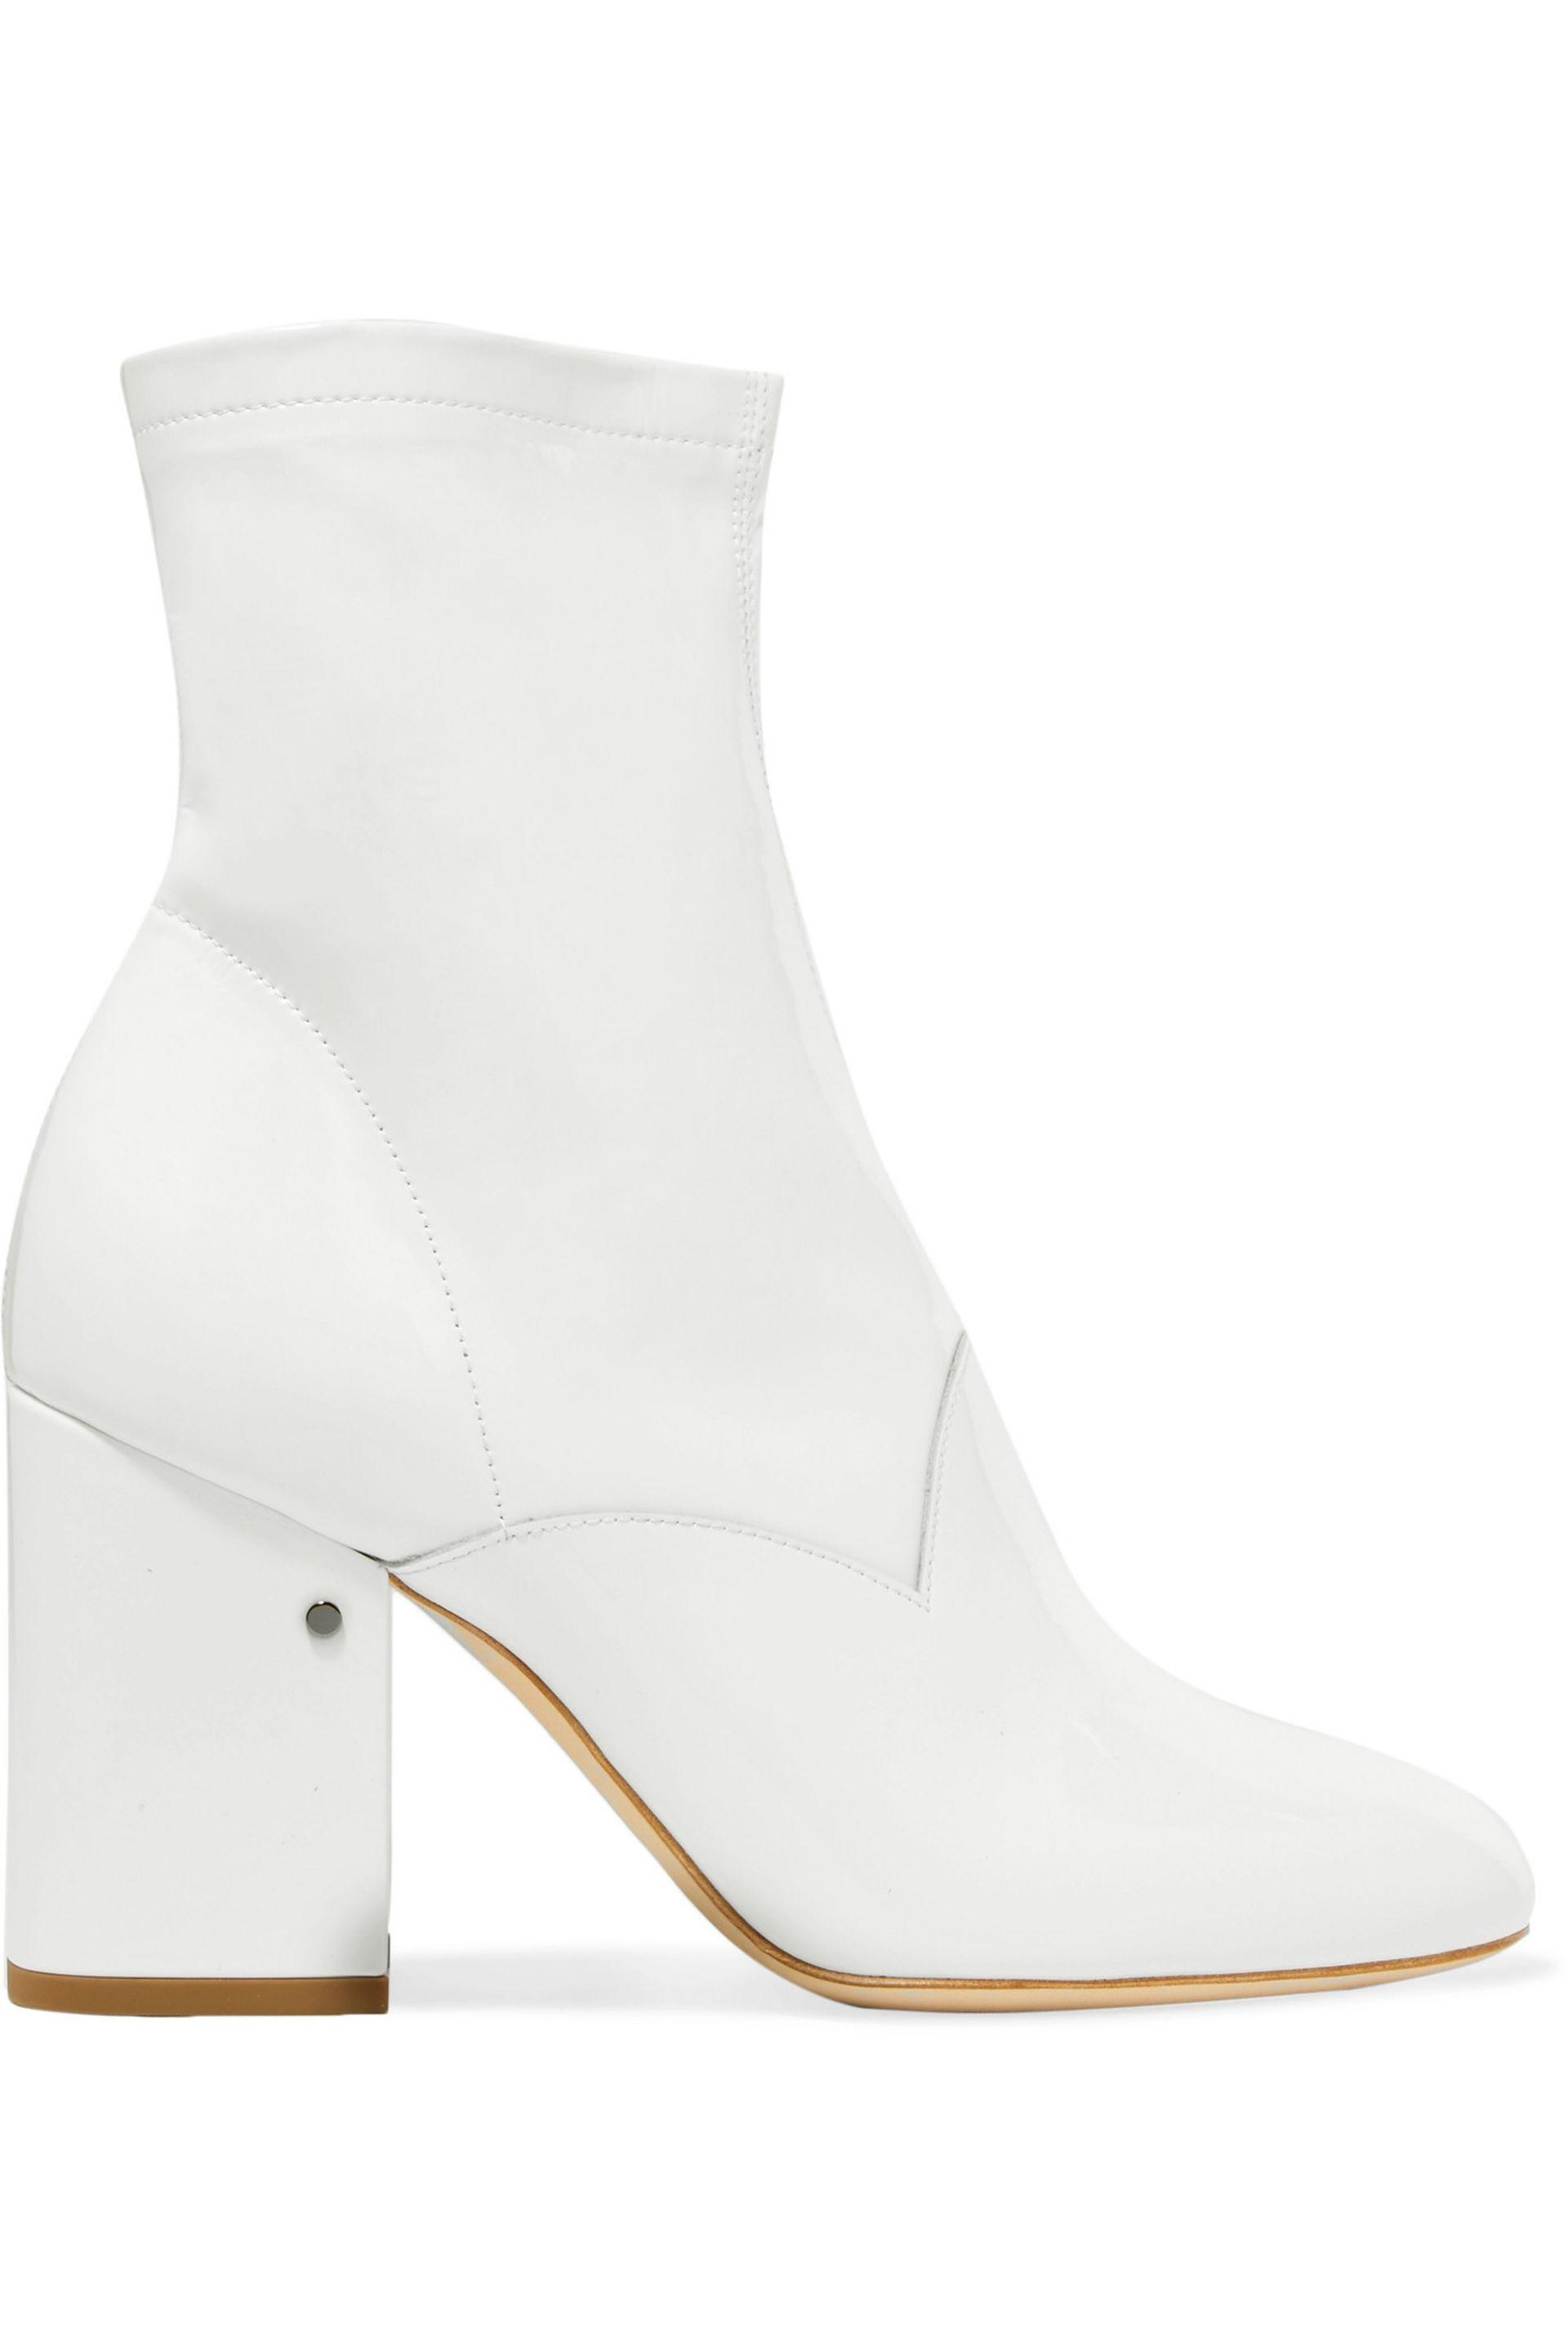 7fc301600b1 Lyst - Laurence Dacade Plume Patent-leather Ankle Boots in White